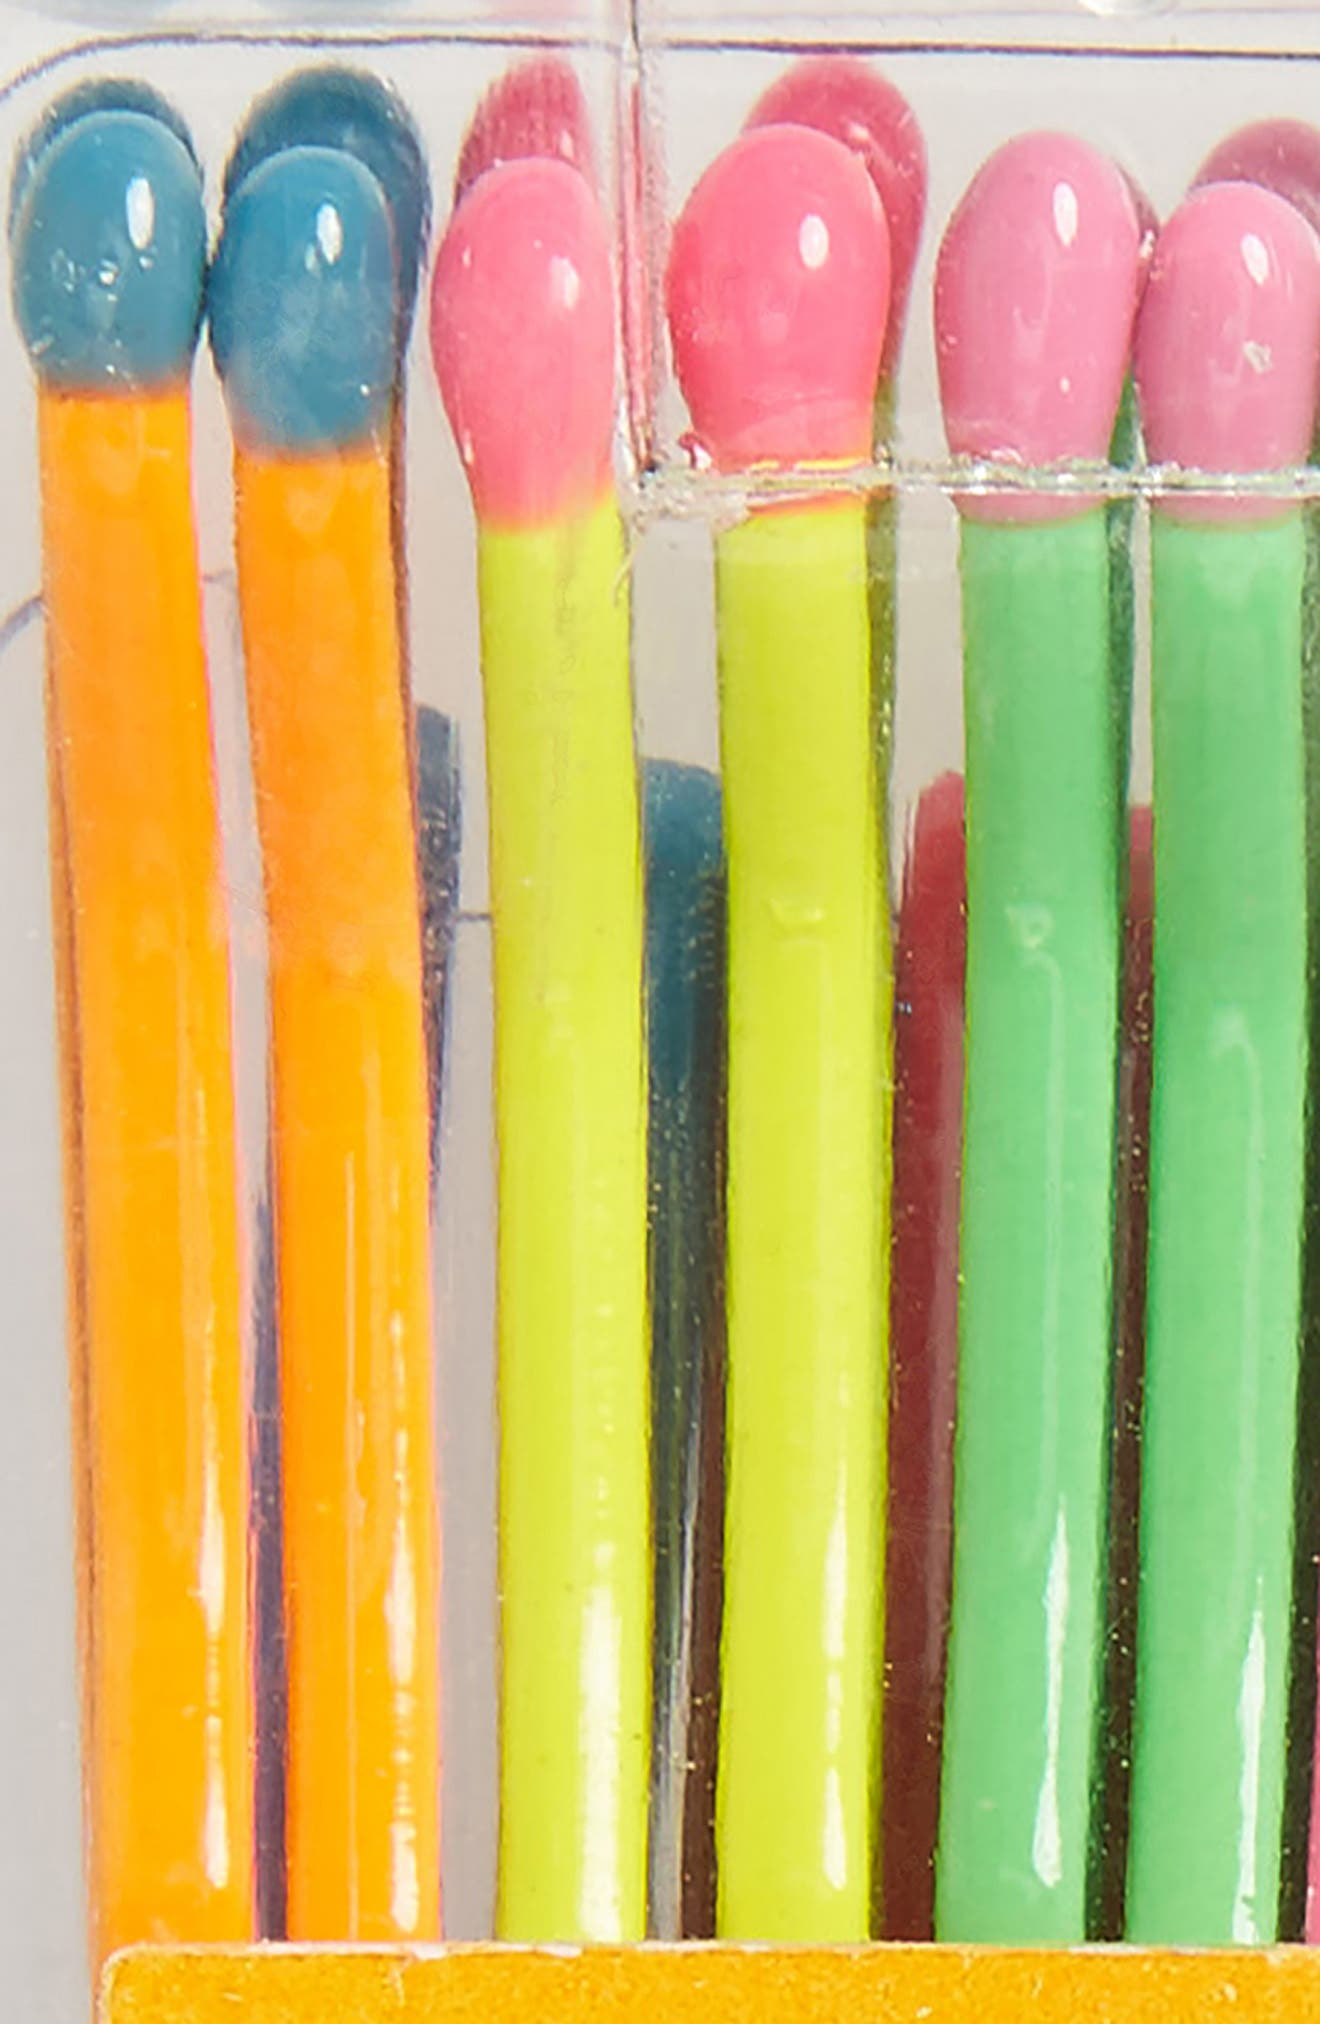 Neon Rainbow Matchsticks Set of 20 Assorted Bobby Pins,                             Alternate thumbnail 2, color,